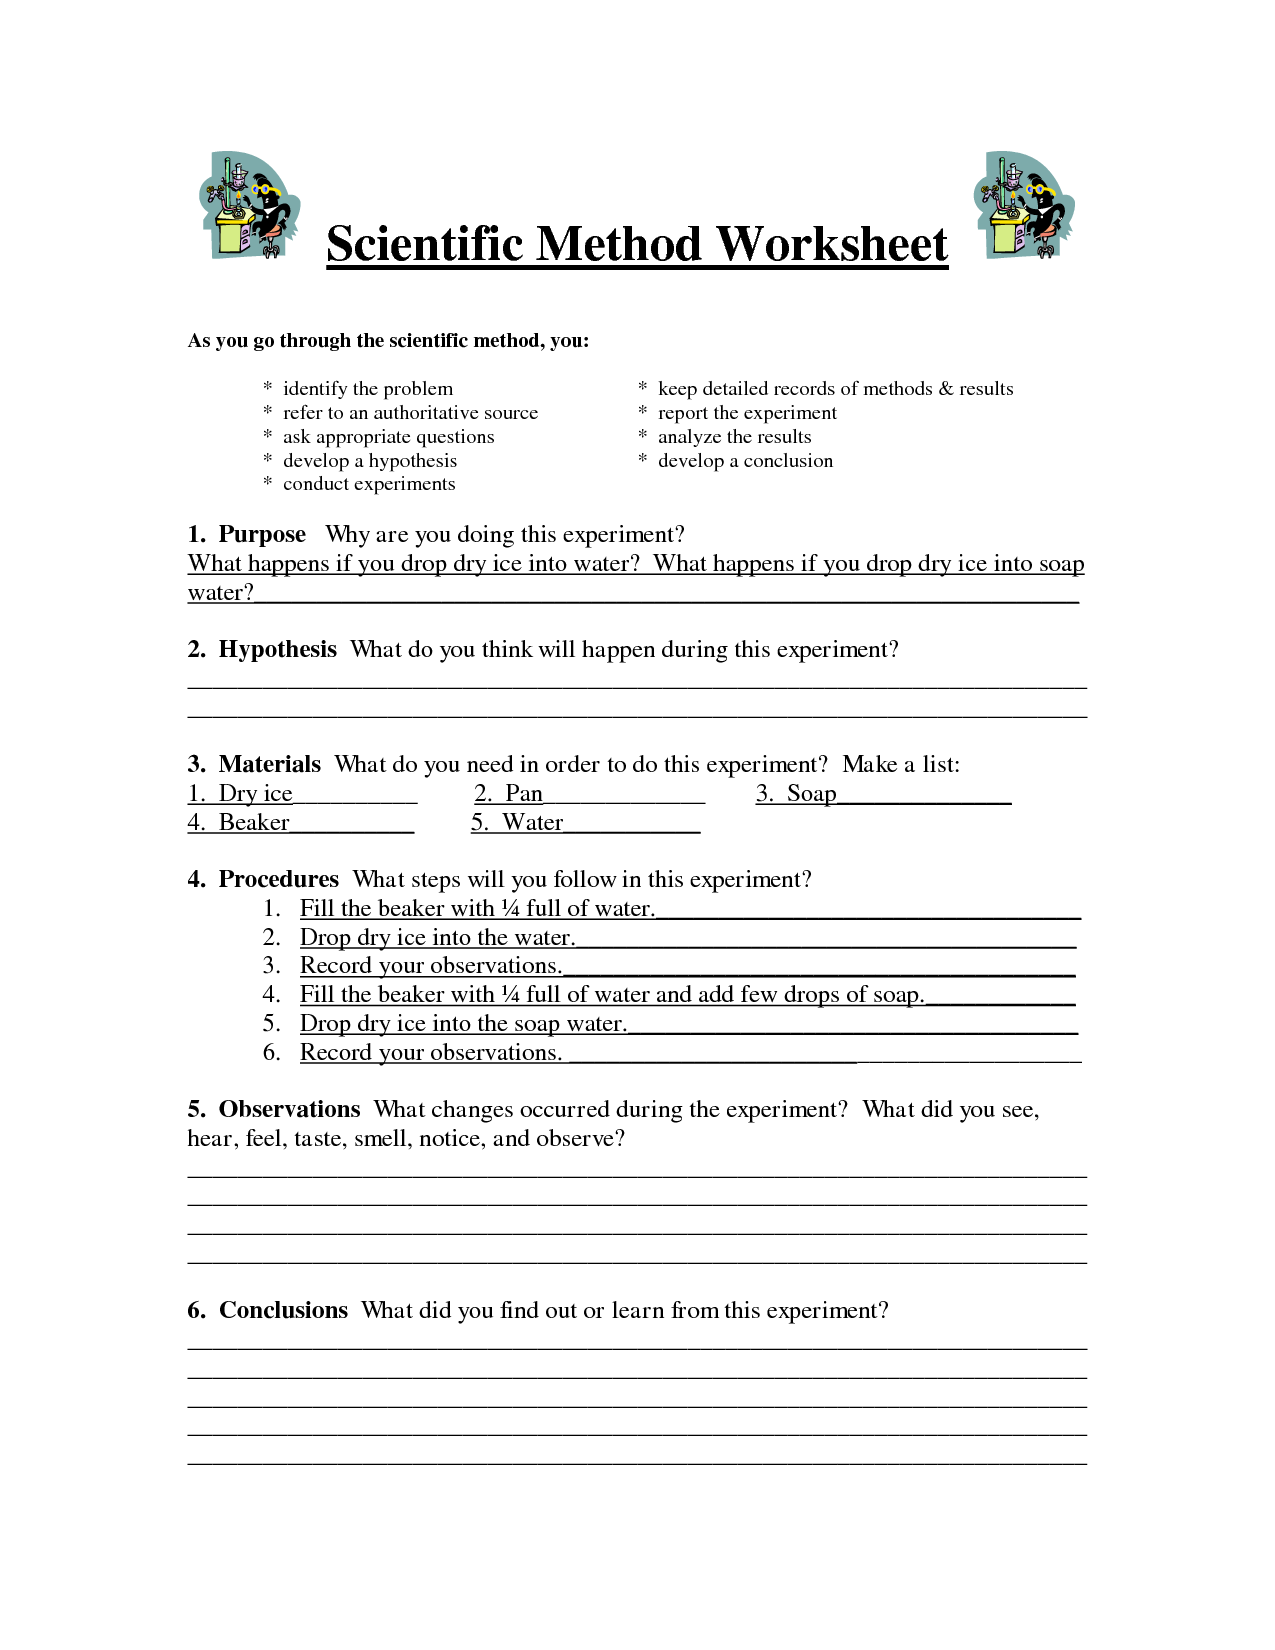 Worksheet Scientific Method Worksheet Middle School